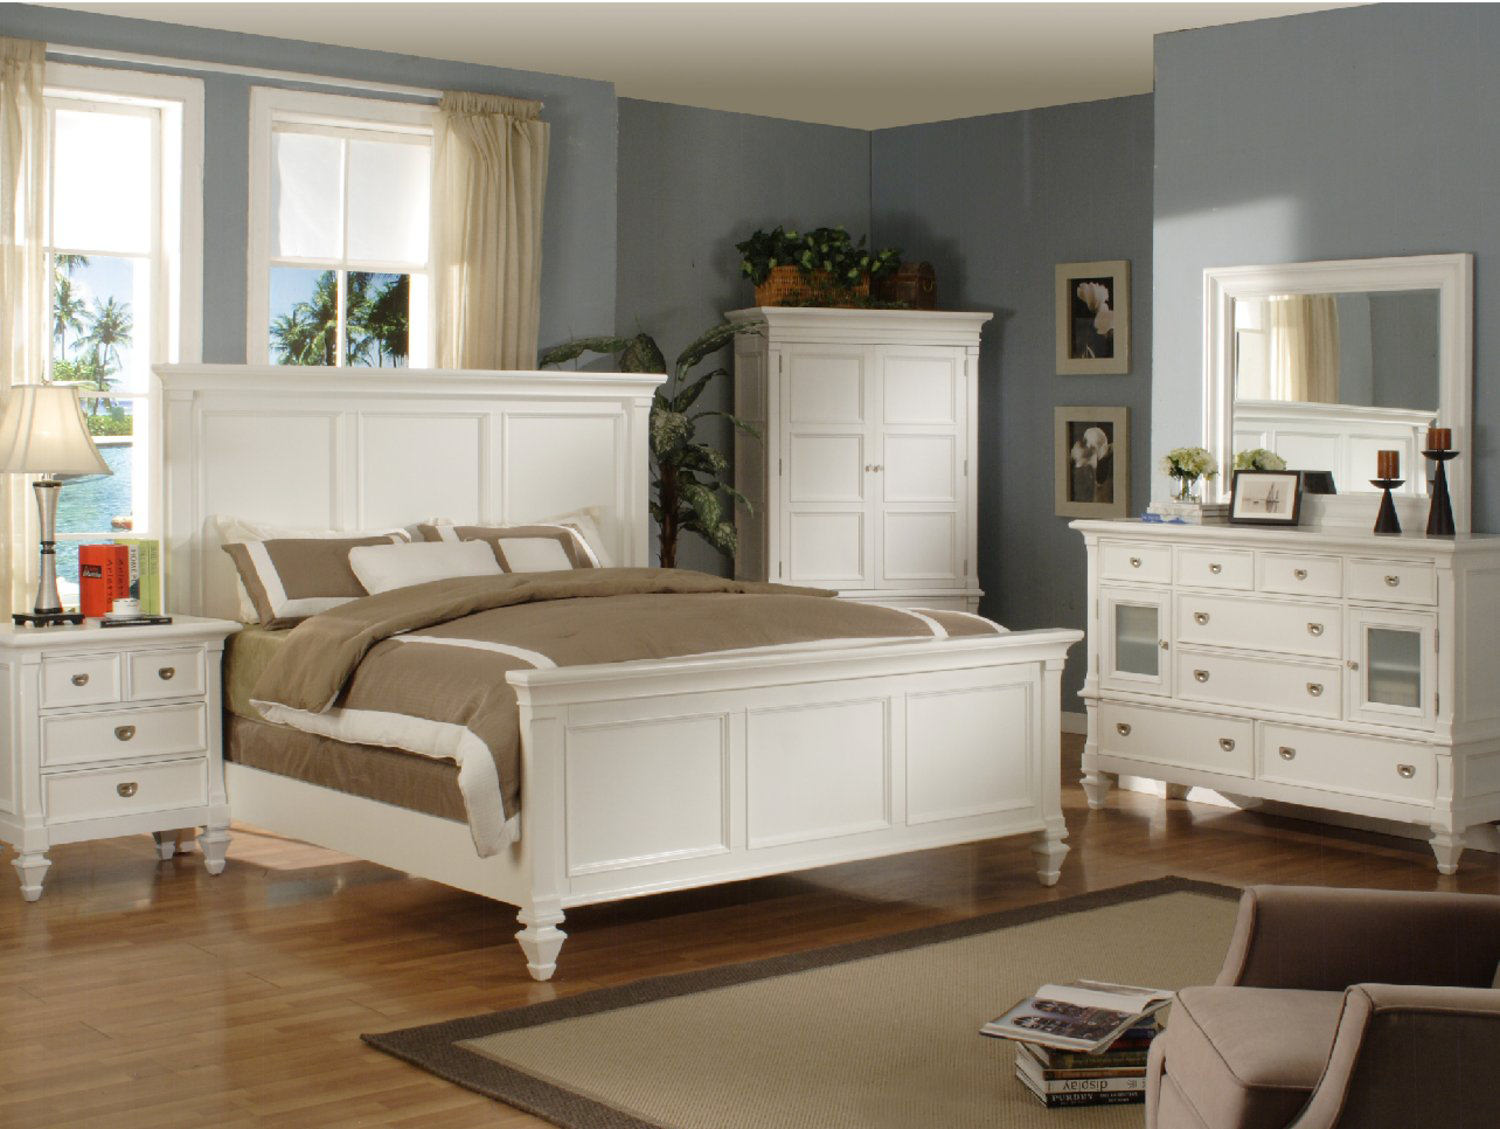 summer breeze queen white panel bed - White Queen Bed Frame